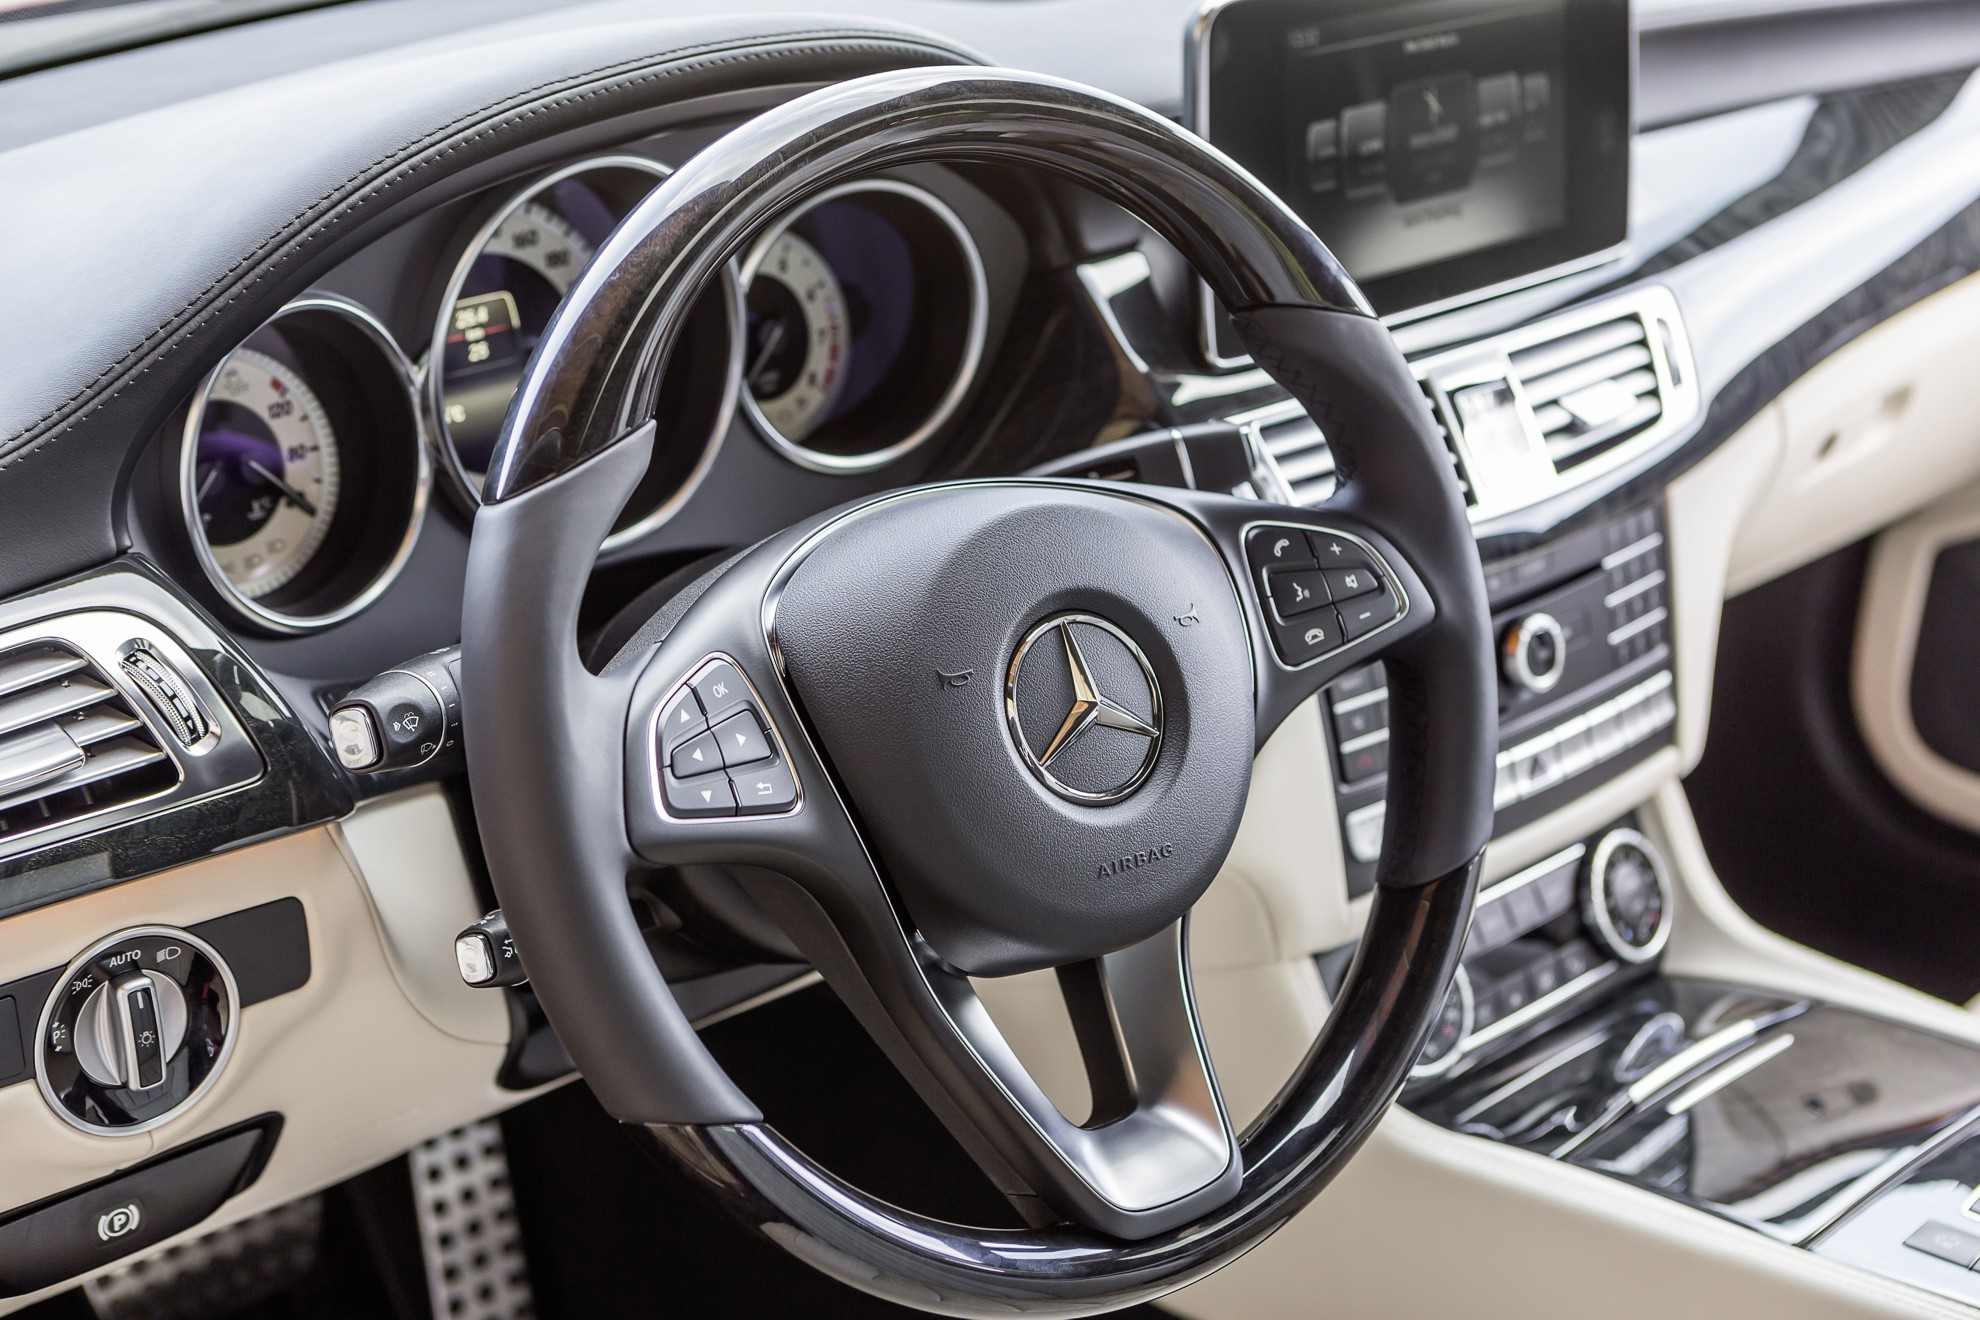 Mercedes Benz Cls 2014 Interior Ample Space